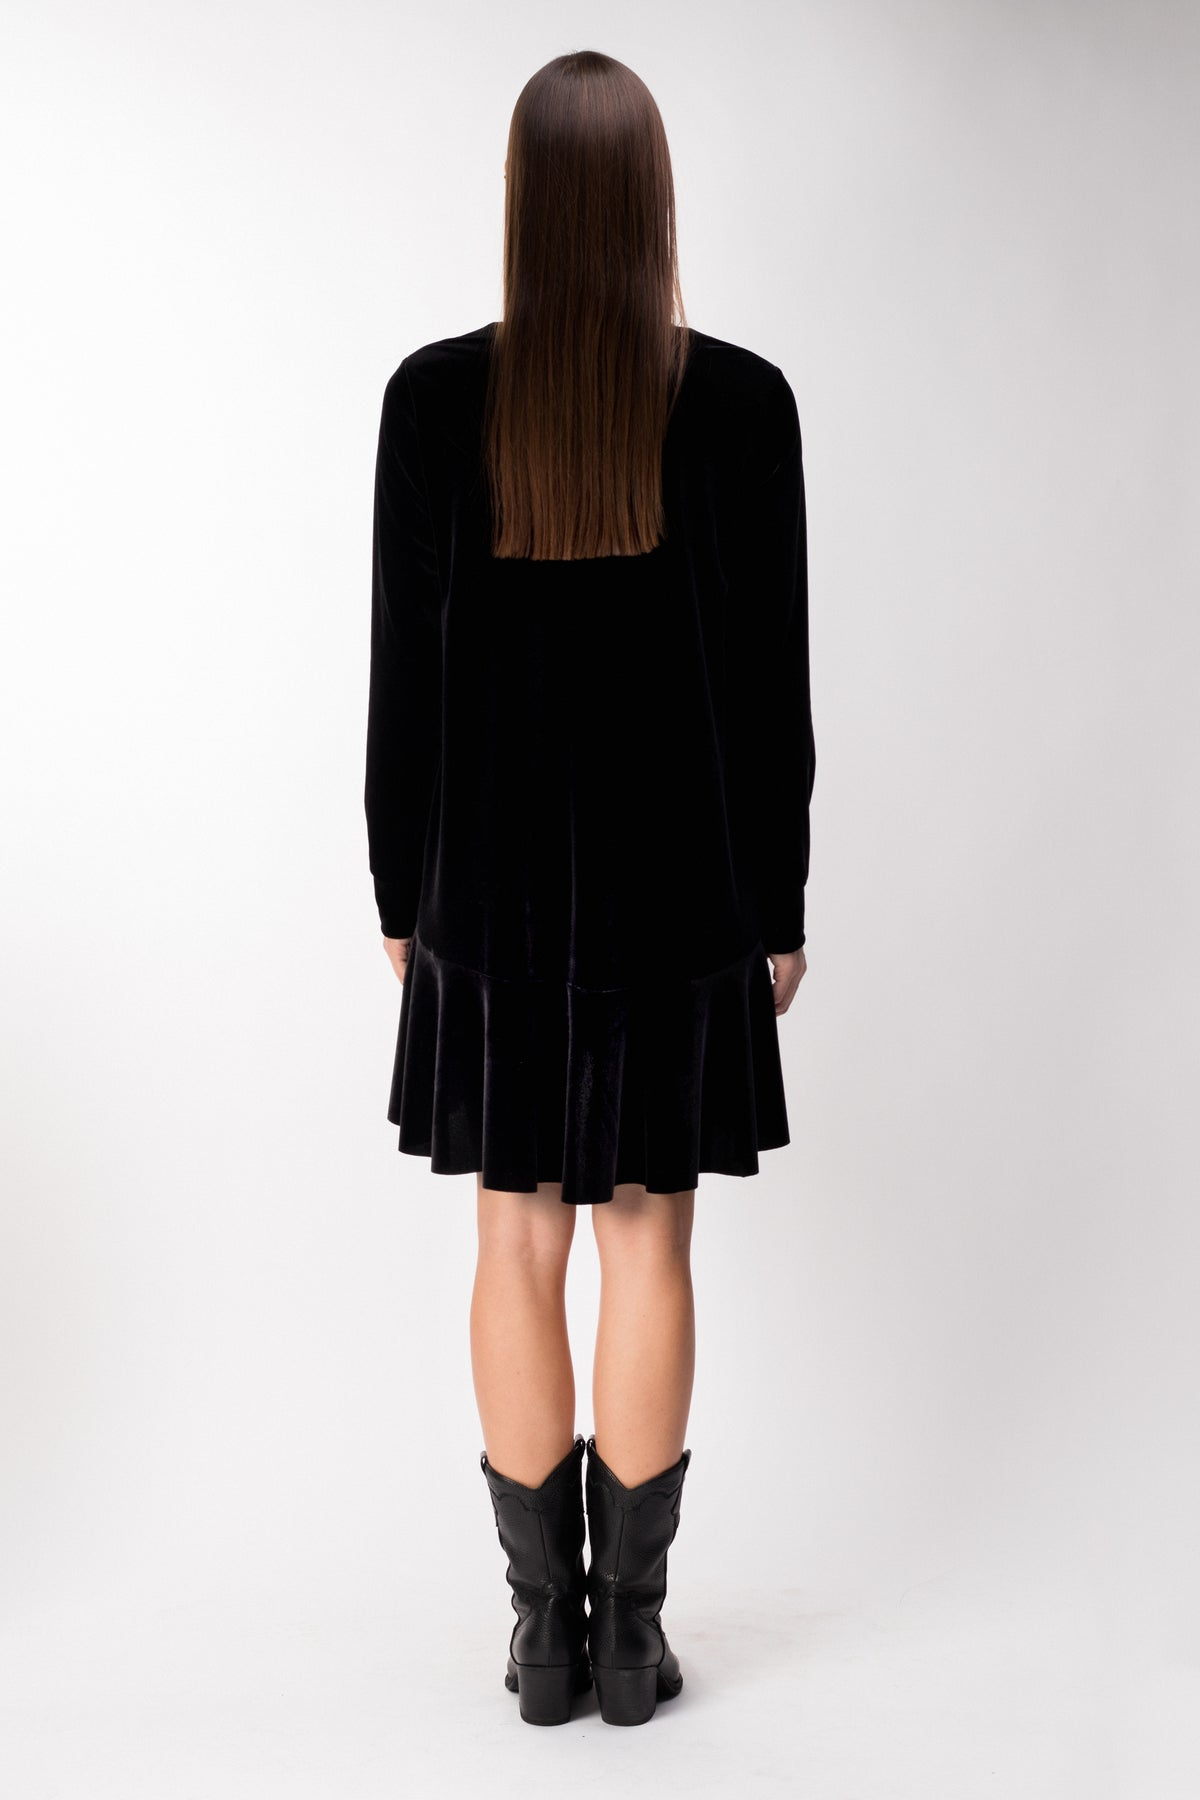 YEAR-ROUND-little-Black-velvet-dress-le-slap-clothing-v-neck.jpg